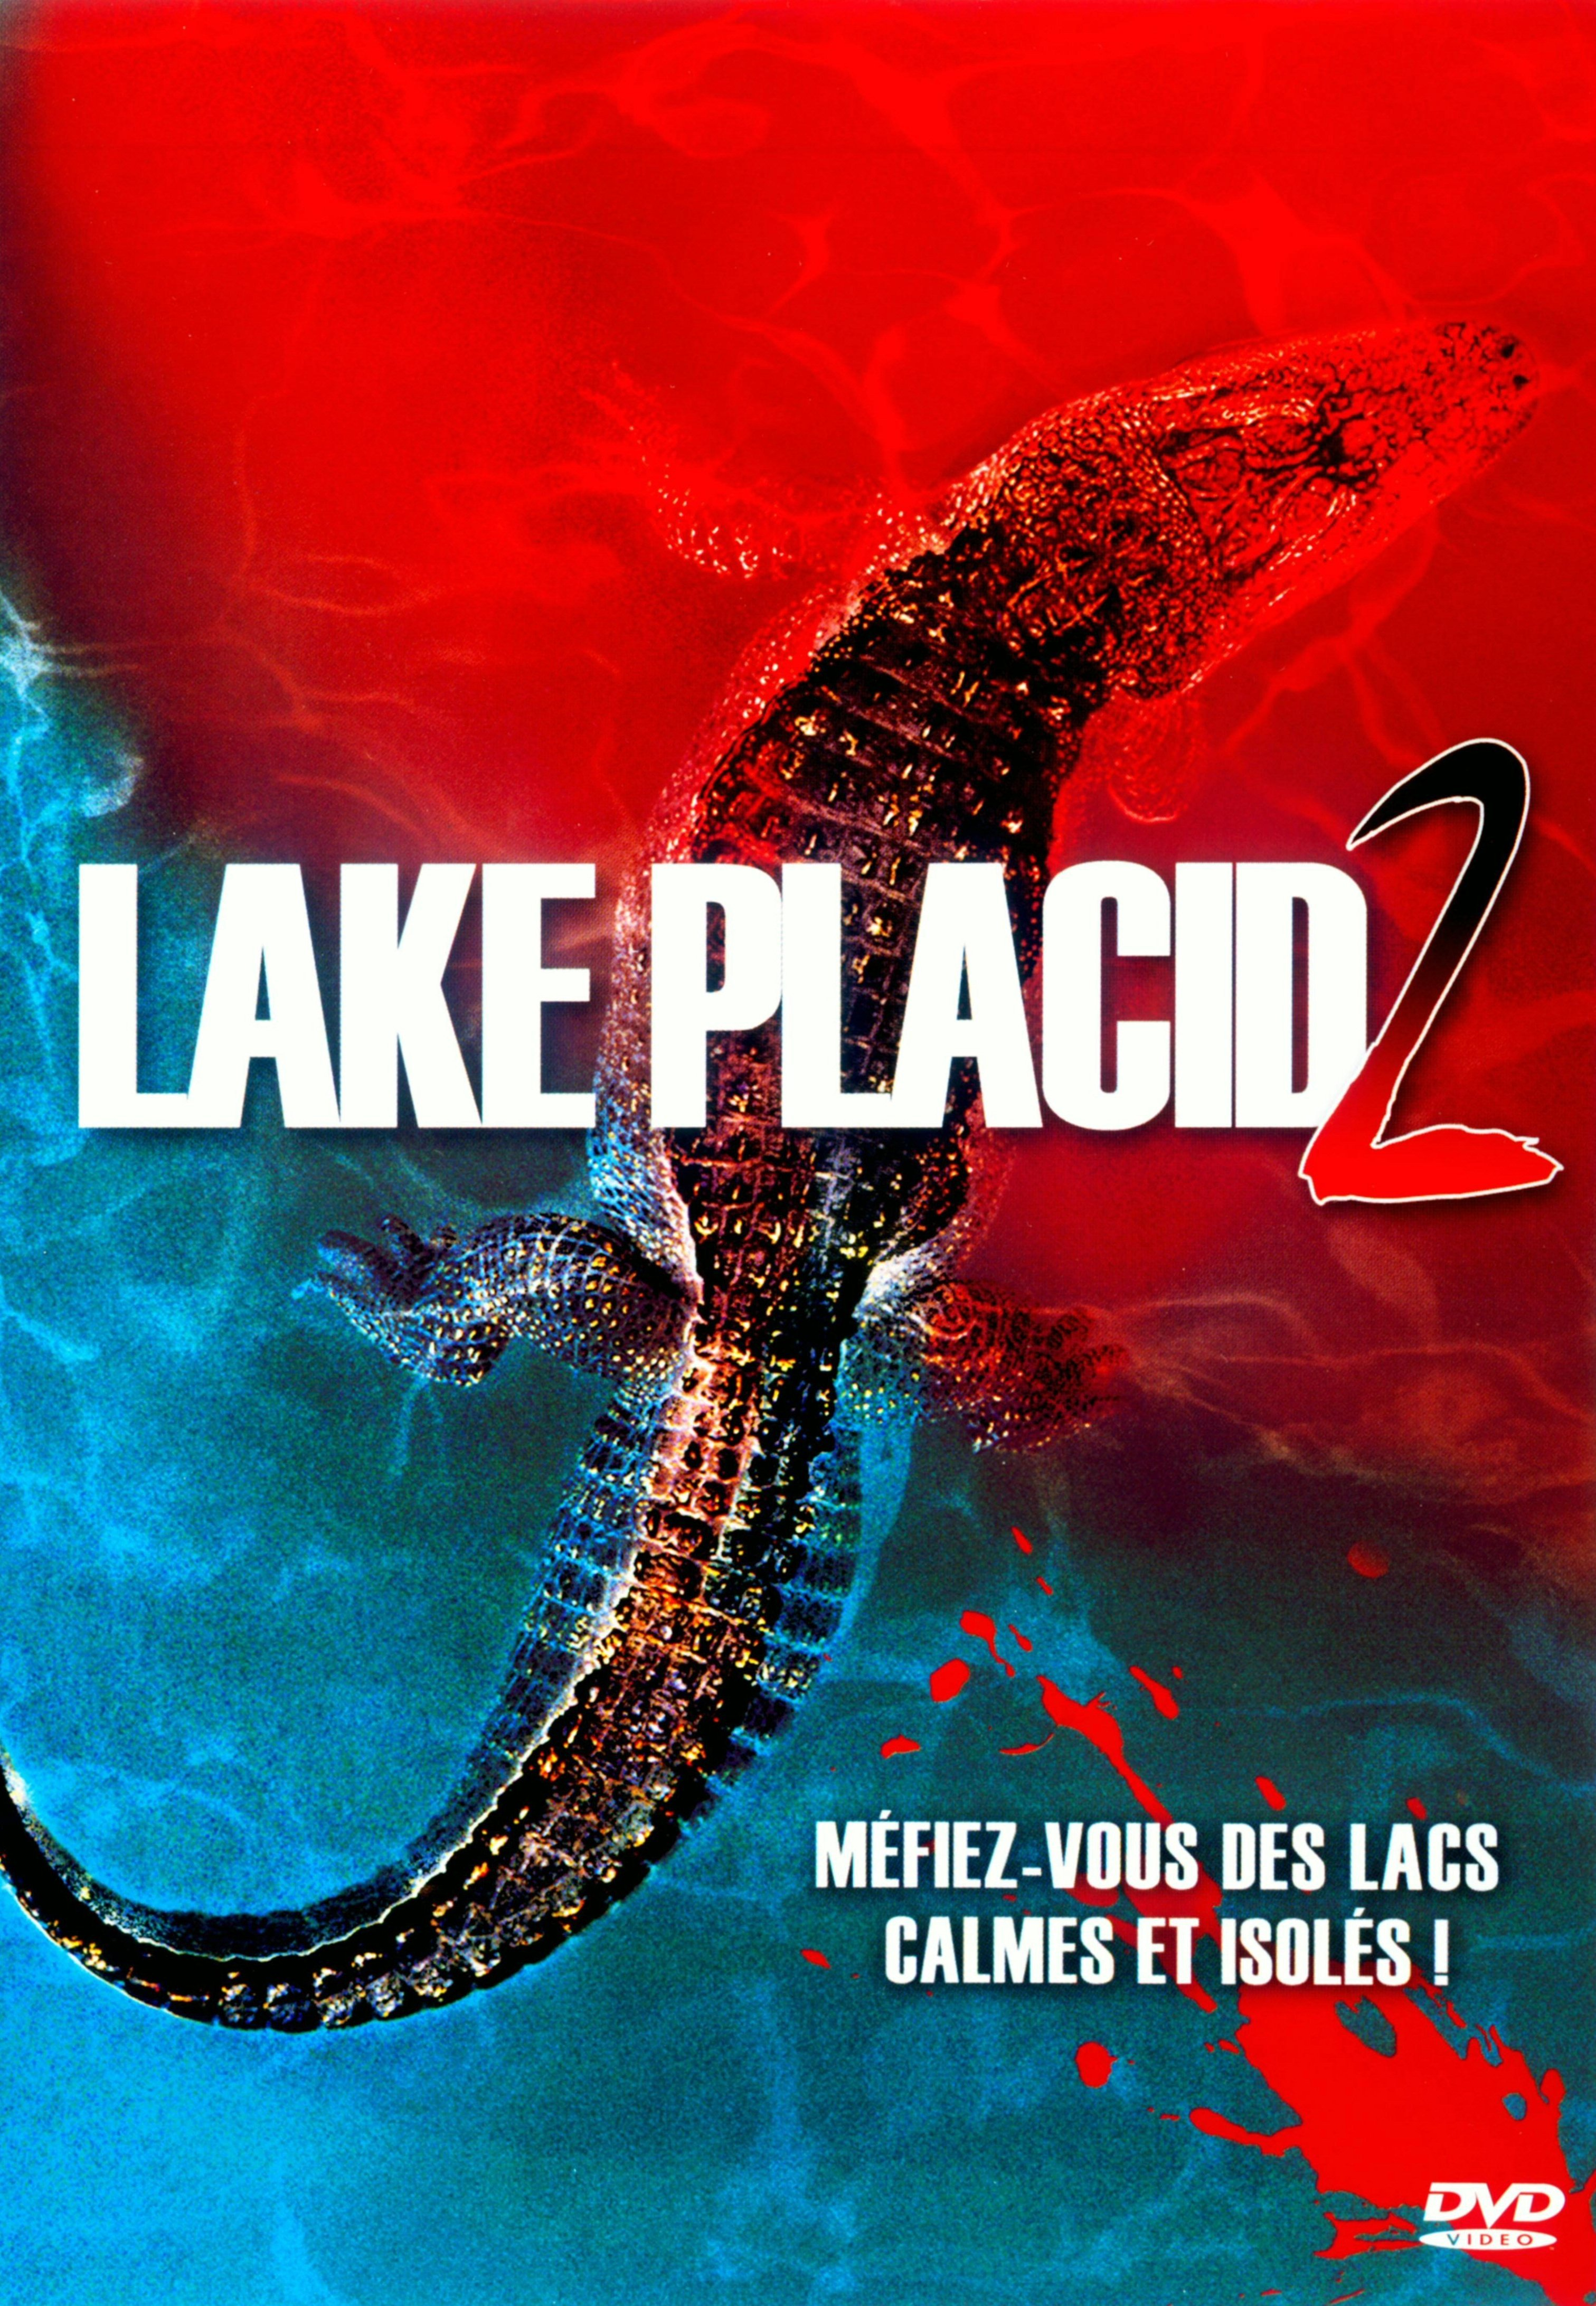 affiche du film Lake Placid 2 (TV)